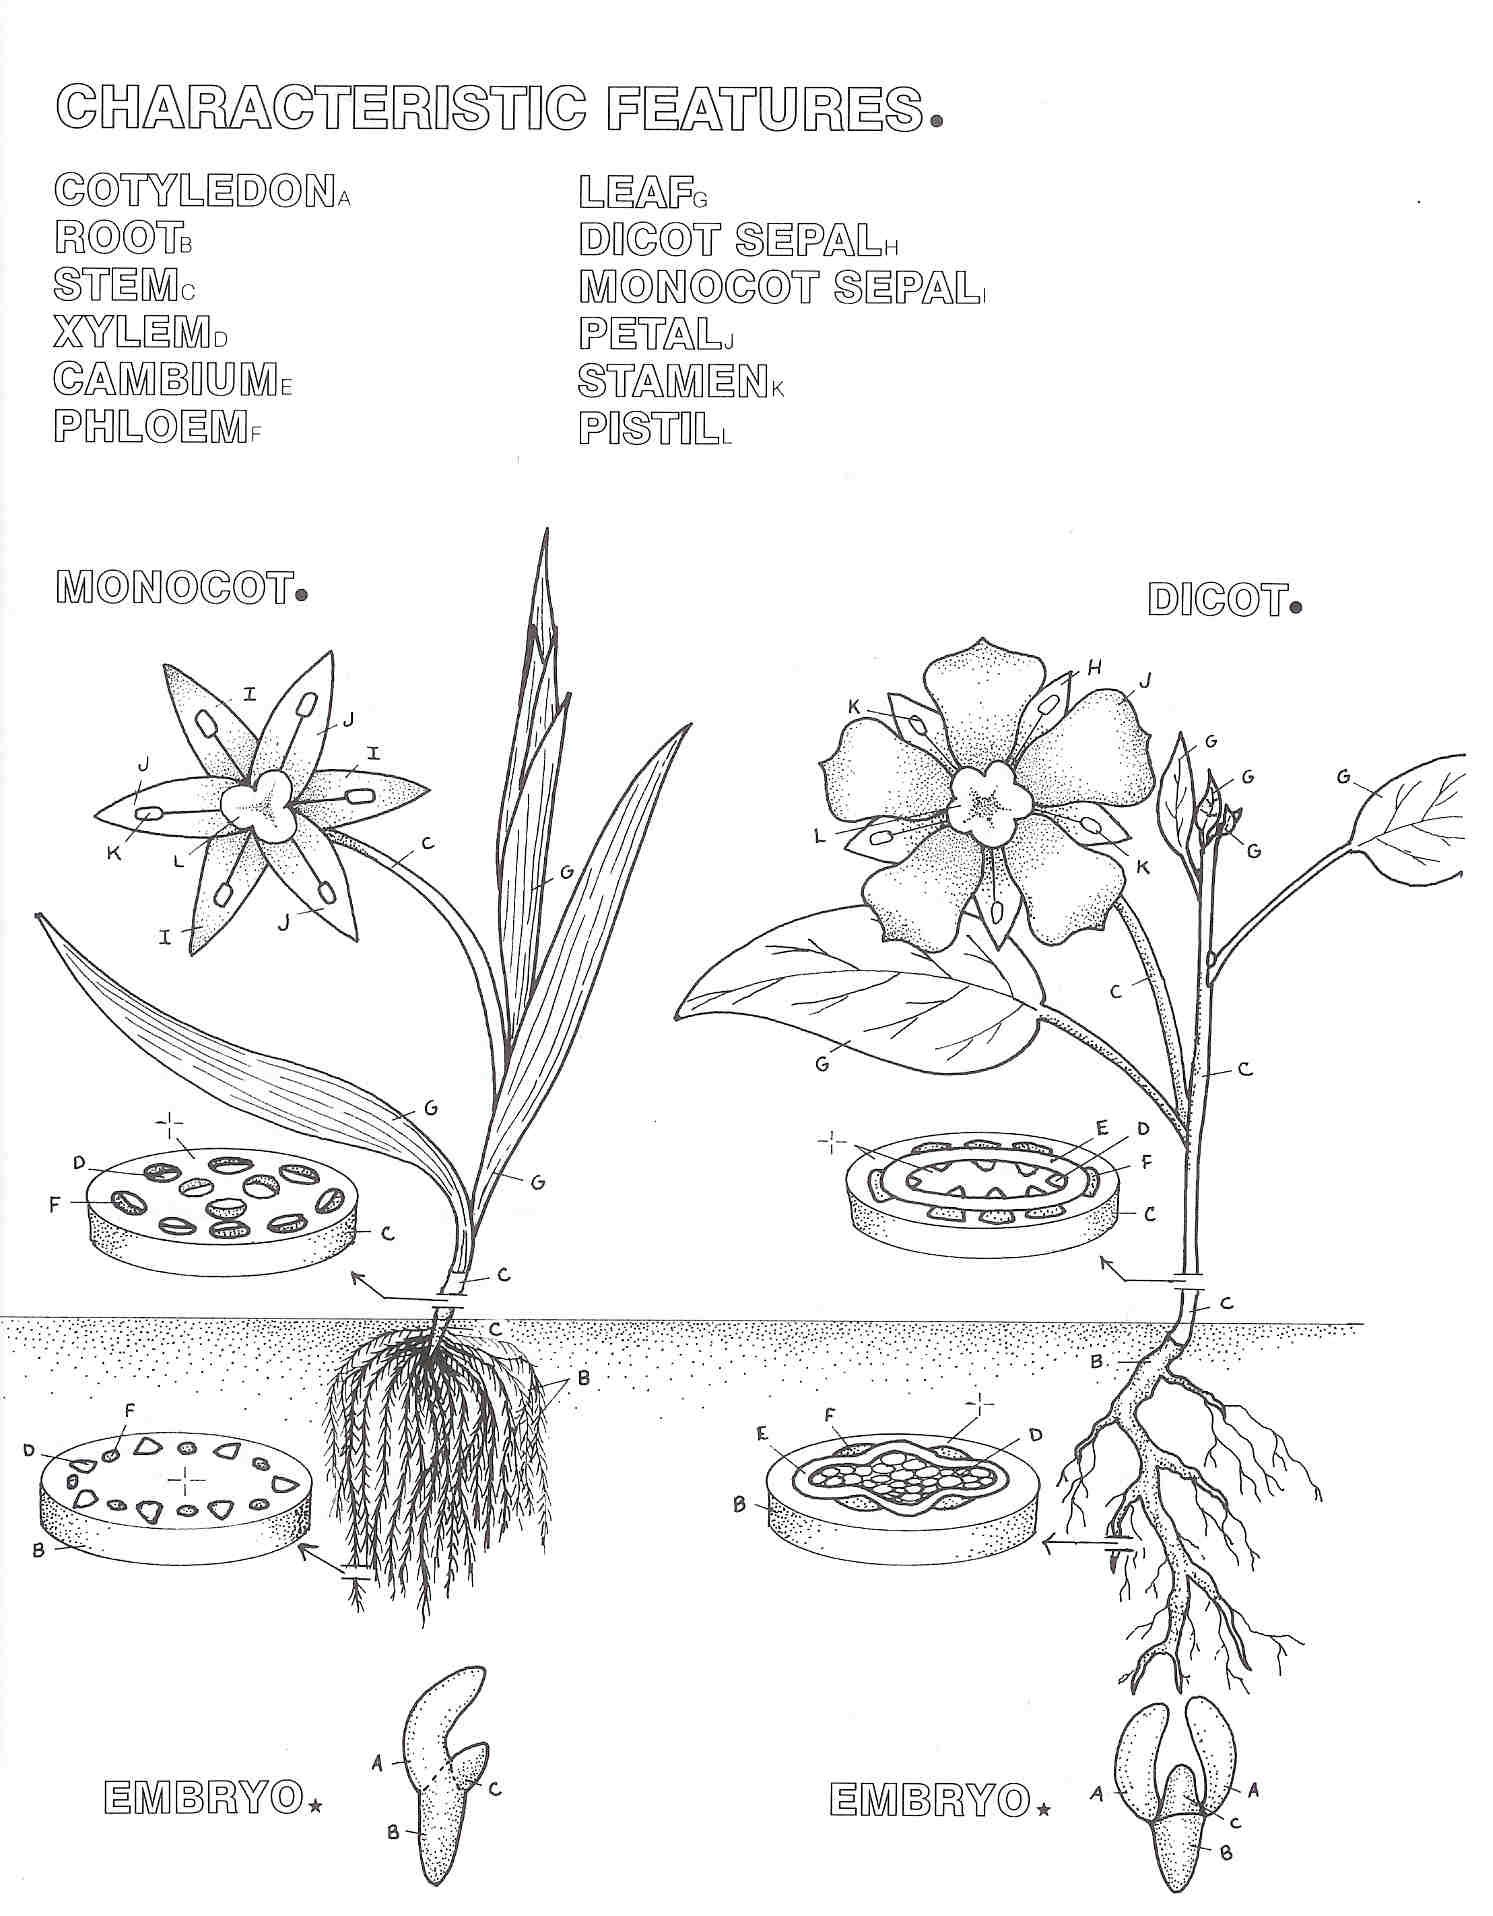 Adult Beauty Photosynthesis Coloring Page Gallery Images top 1000 images about coloring books on pinterest paul young parts of a plant and botany images